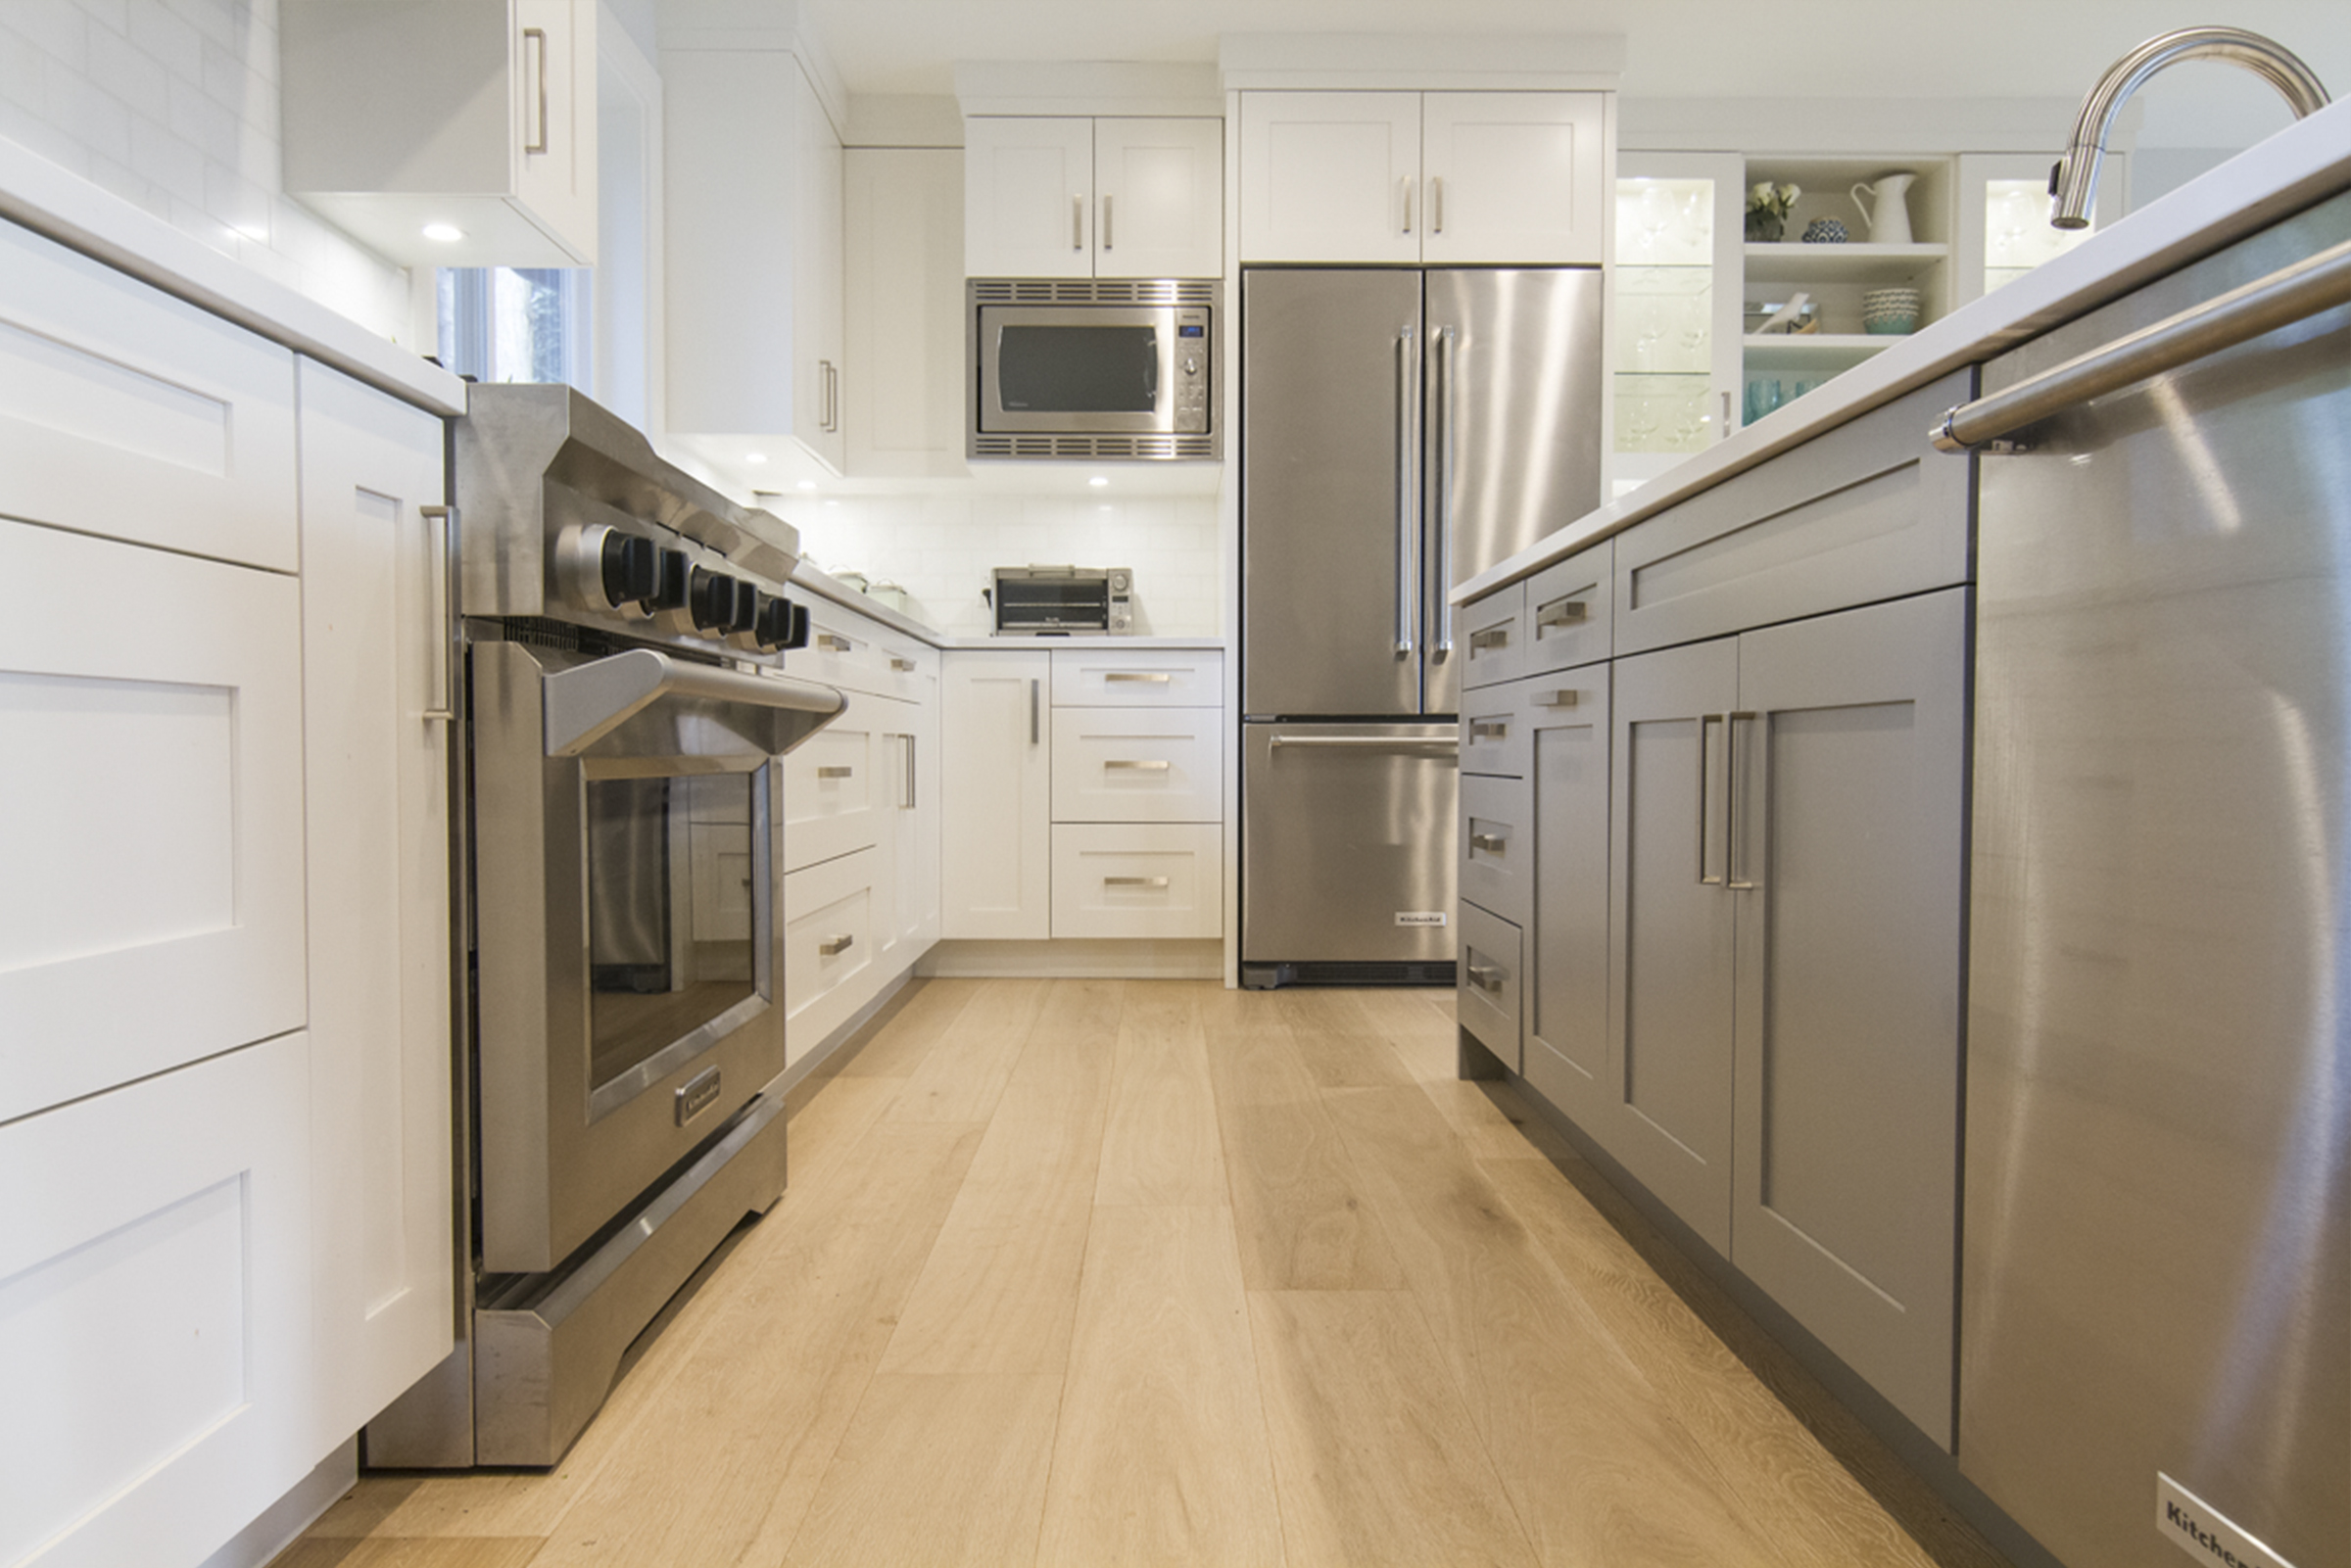 Kitchen cabinet refacing north vancouver - Whitecabinets_kitchenfloor Browncabinets_microwave Whitecabinets_cupboards